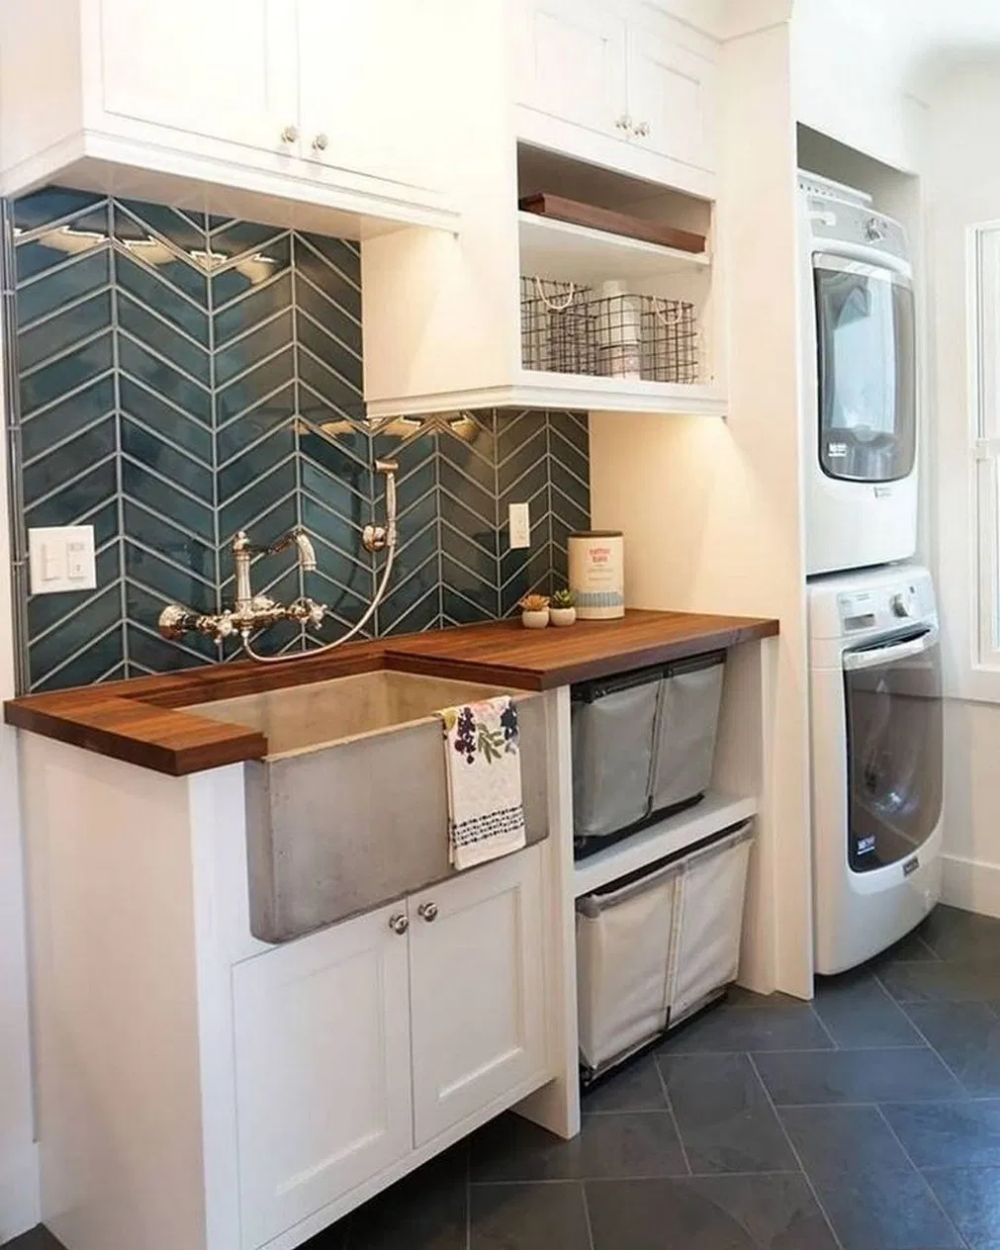 10x10 Laundry Room Layout: 22 Dream Laundry Room Makeover Ideas 14 « Inspiredesign